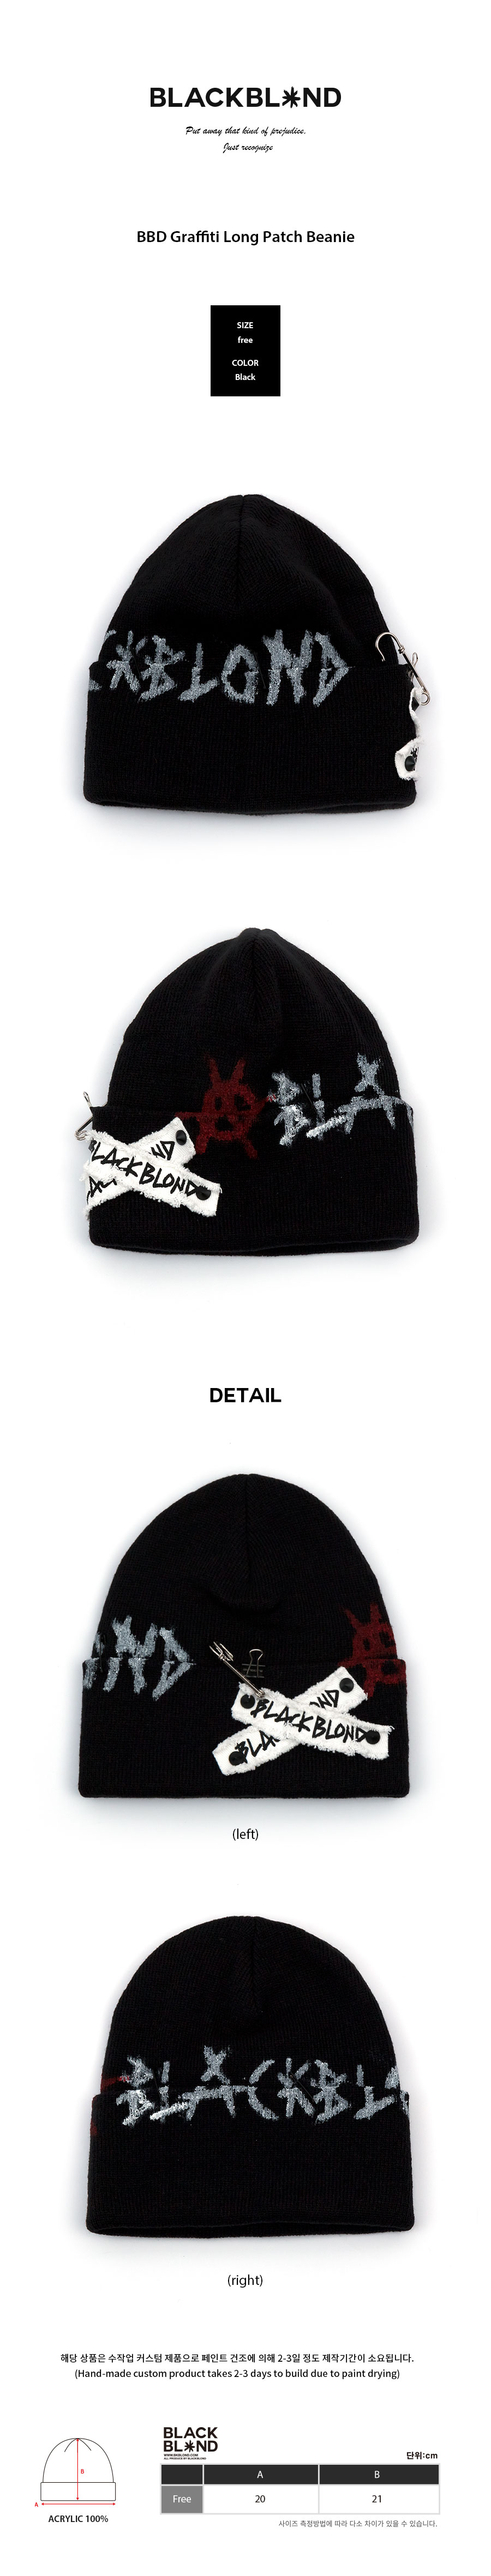 BBD-Graffiti-Long-Patch-Beanie-%28Black%29.jpg